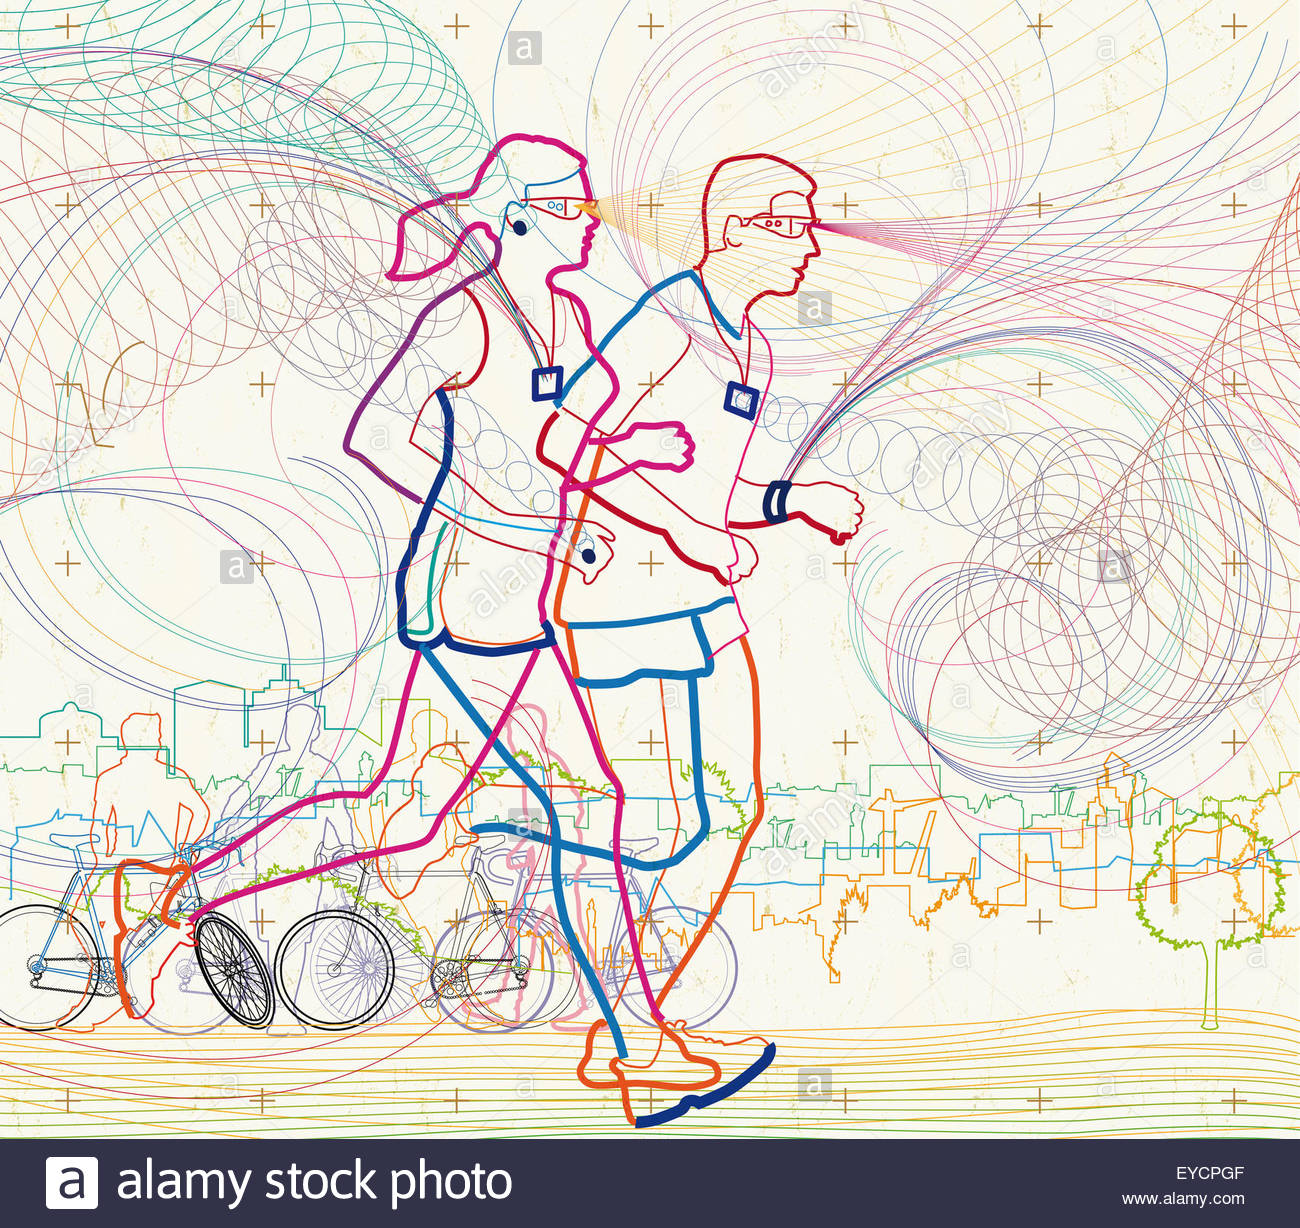 Man and woman running together in city using fitness activity trackers - Stock Image